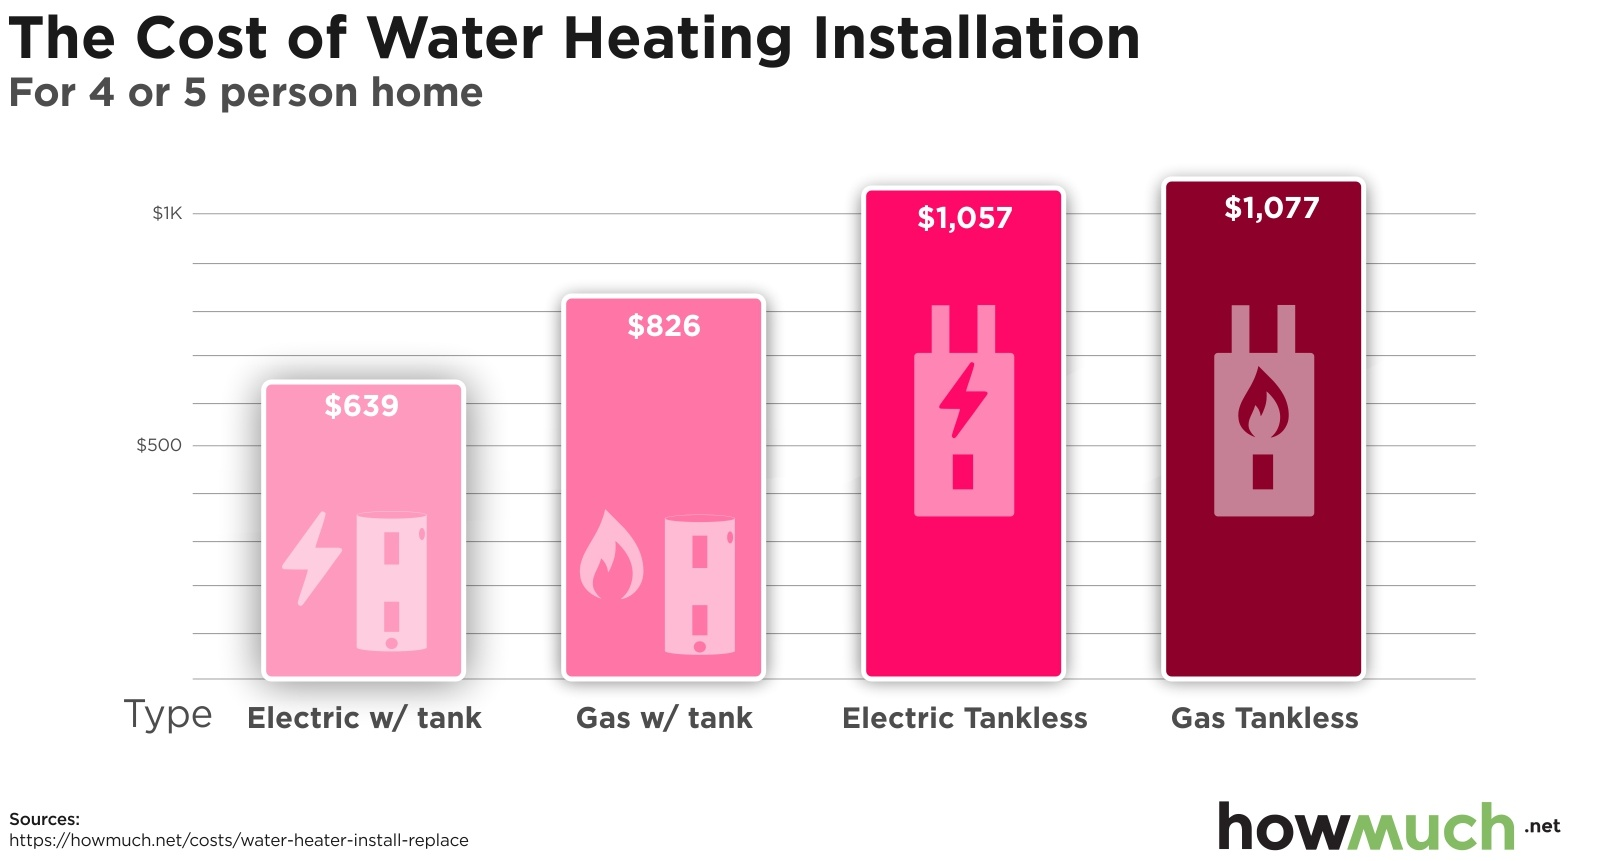 How much does it cost to install water heating?